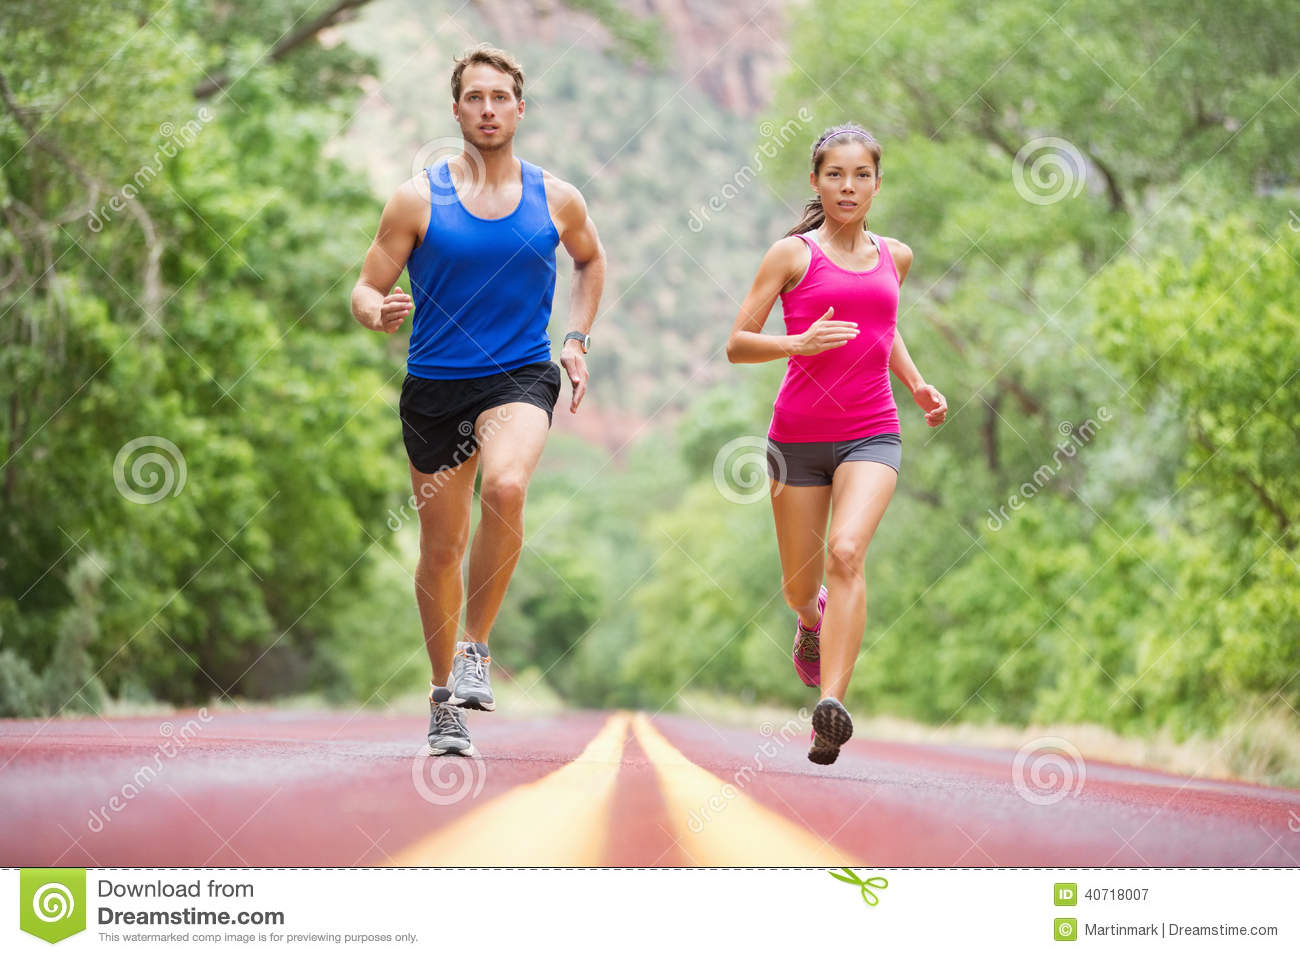 Running Young People - Jogging Training In Nature Stock Photo - Image ...